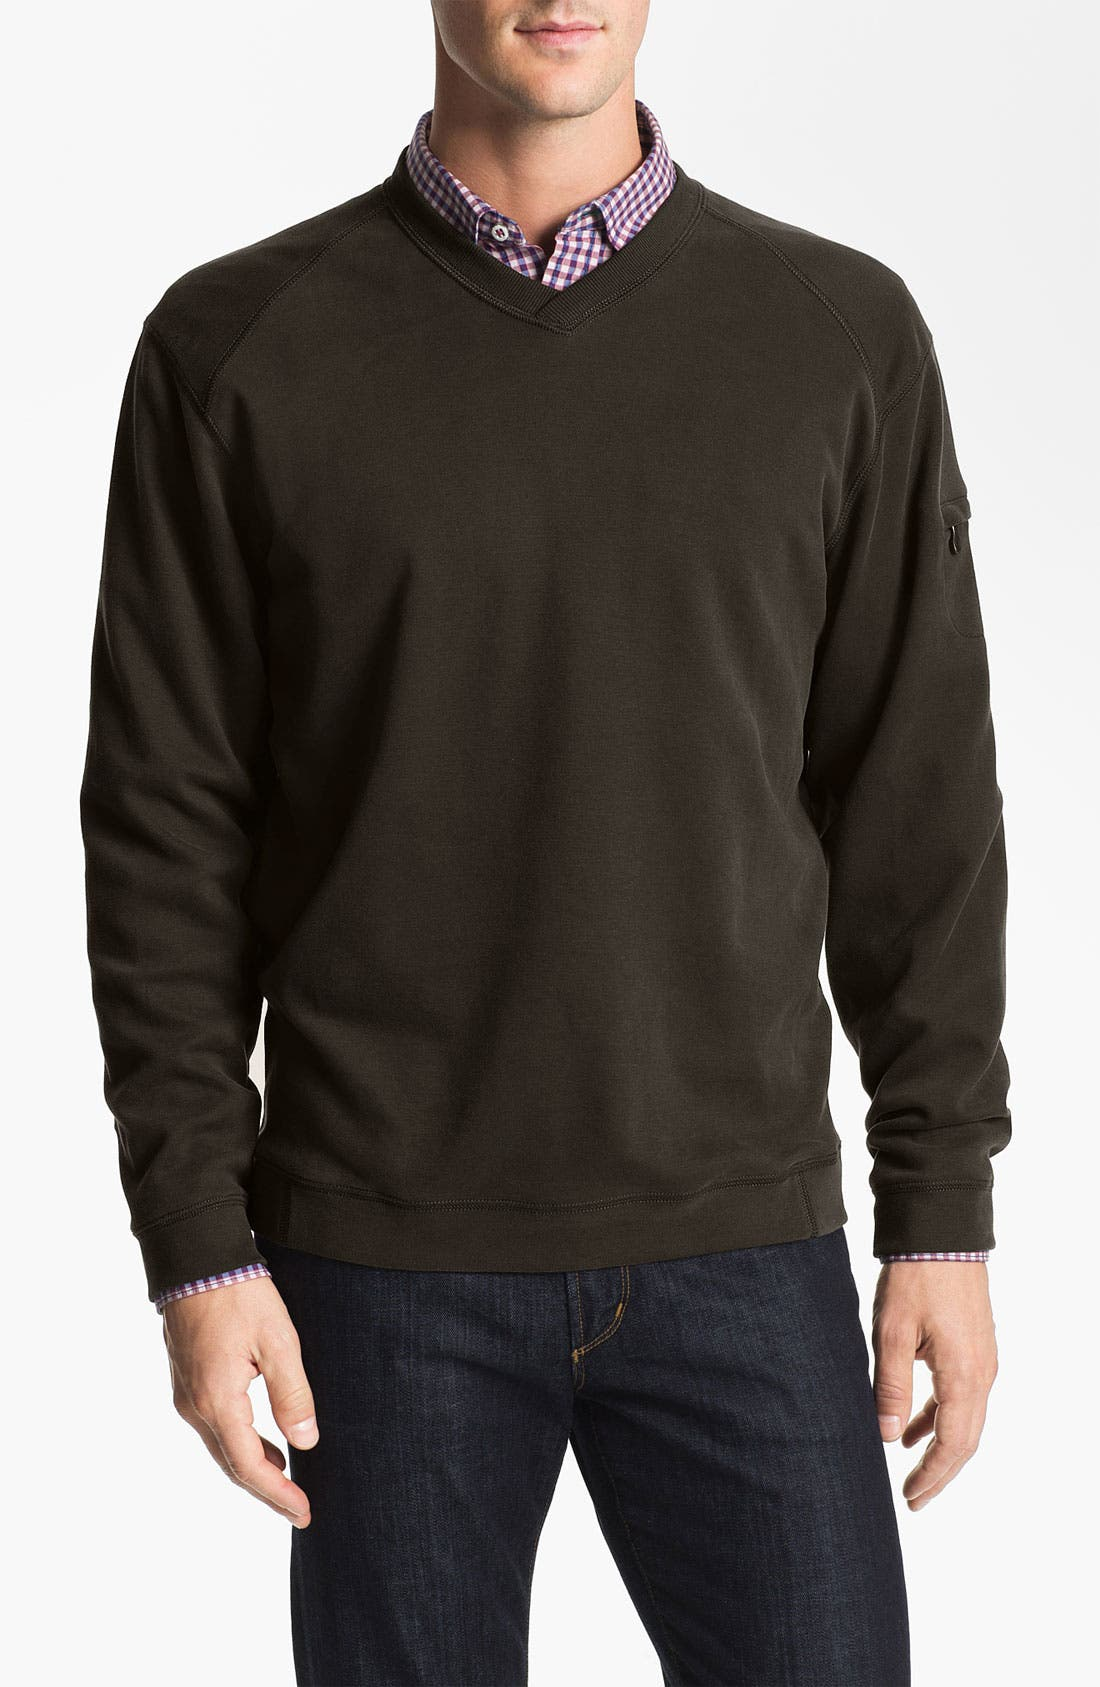 Alternate Image 1 Selected - Tommy Bahama 'New Palisuede' V-Neck Pullover